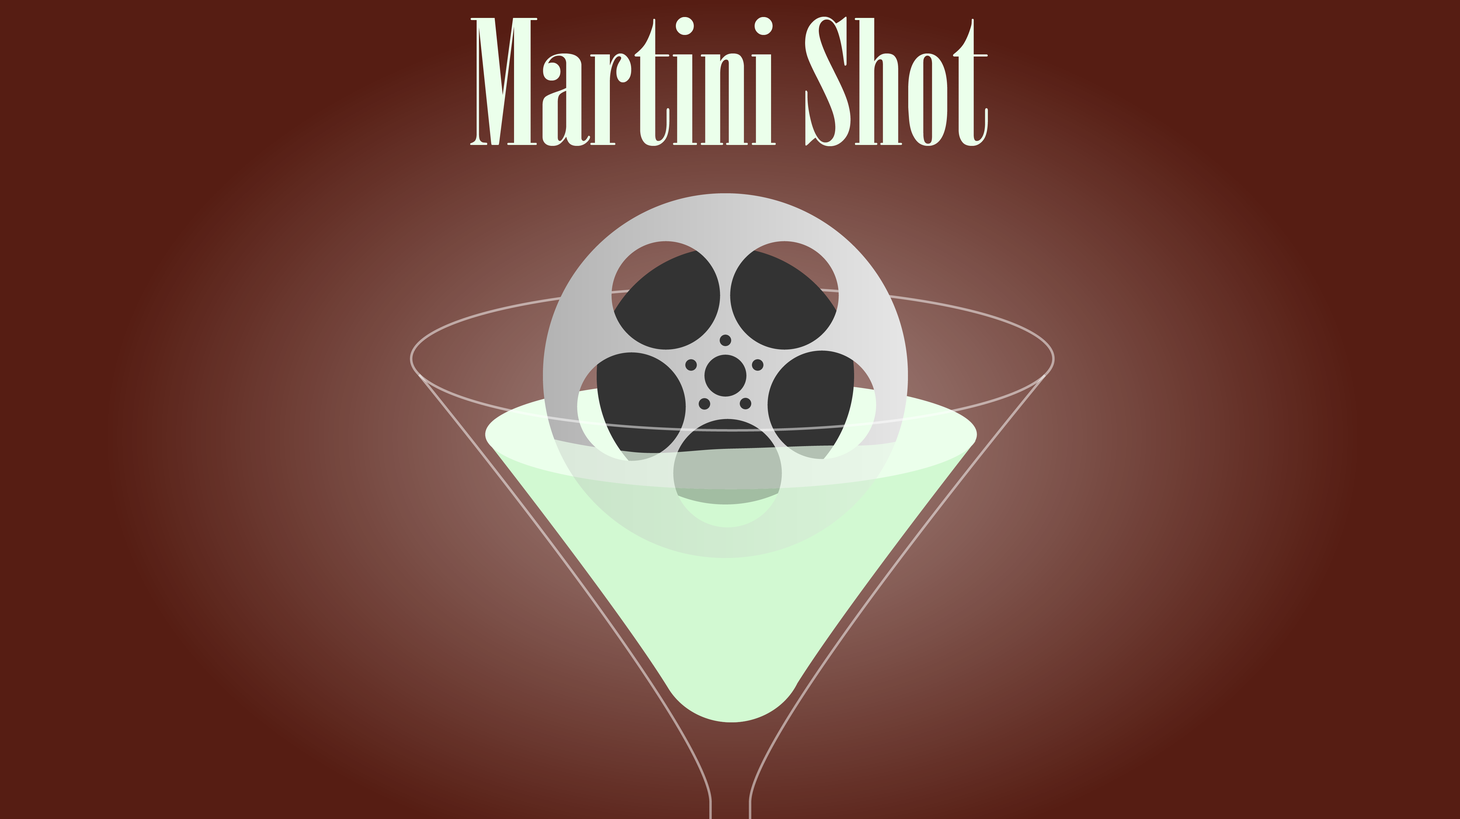 On today's Martini Shot Rob talk about two kinds of people: the ones who like conflict and the ones who avoid it. Guess which group is richer?